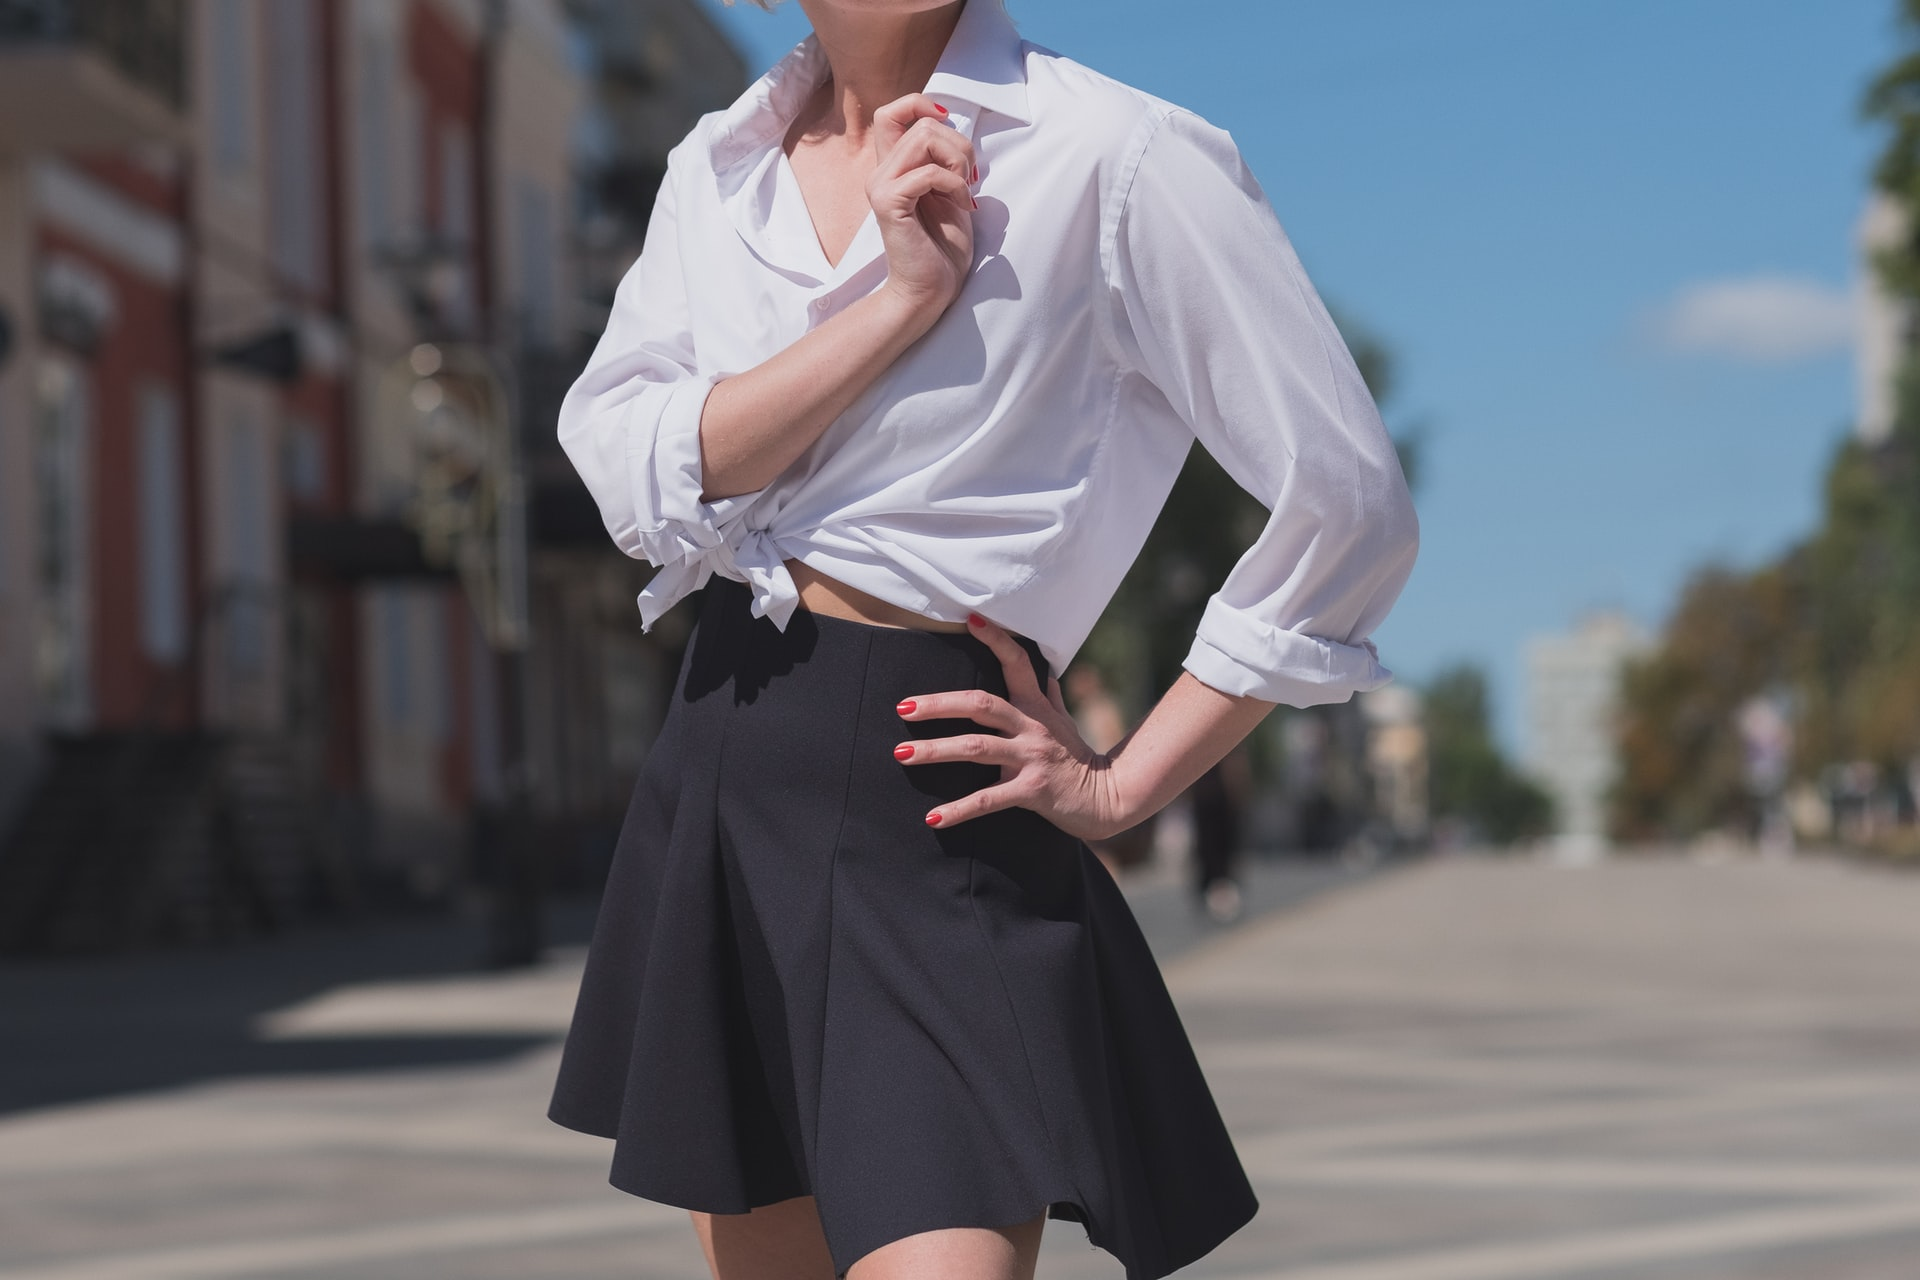 female wearing a short black skirt and a white blouse